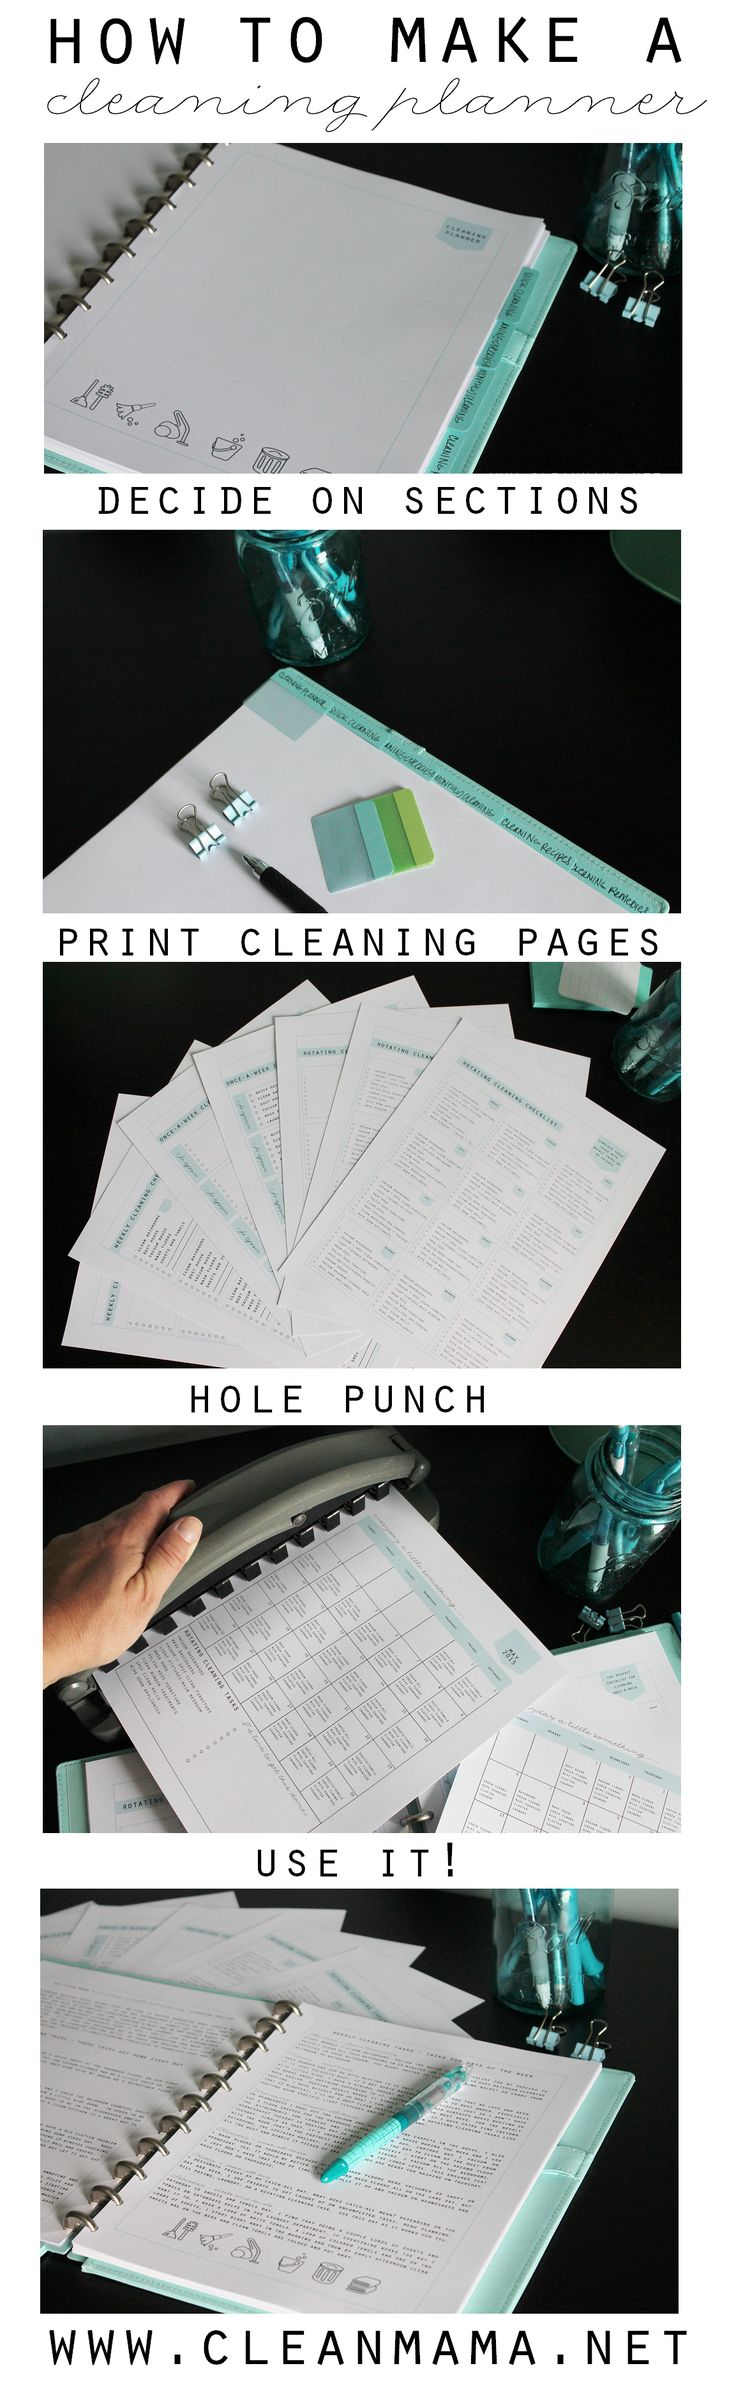 Make your own cleaning planner to finally stay on top of the daily, weekly and monthly cleaning. Full of practical tips and tricks!